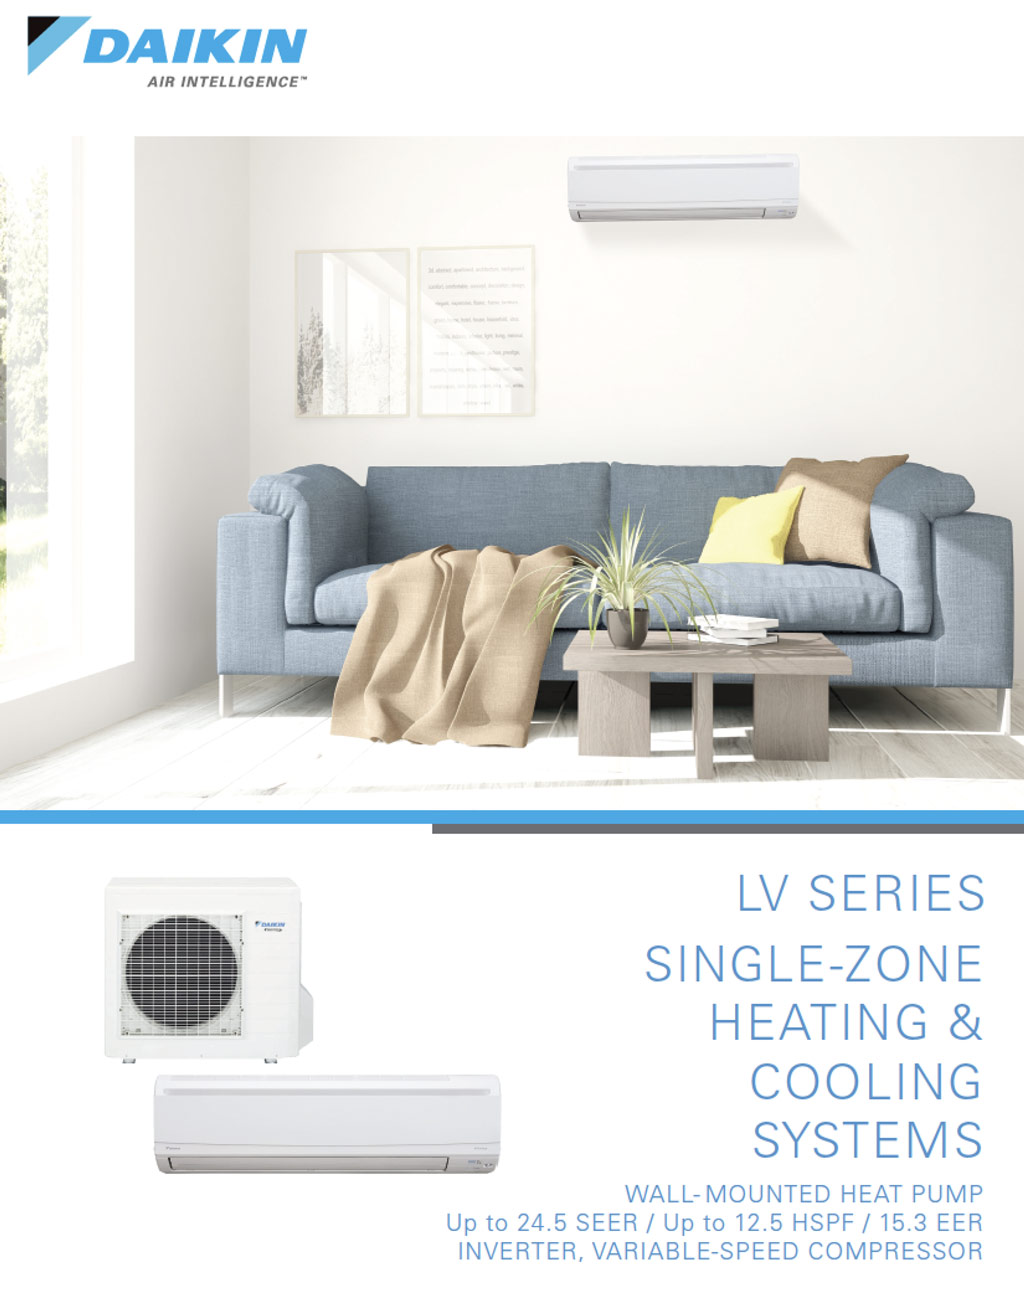 Daikin LV Series Single Zone